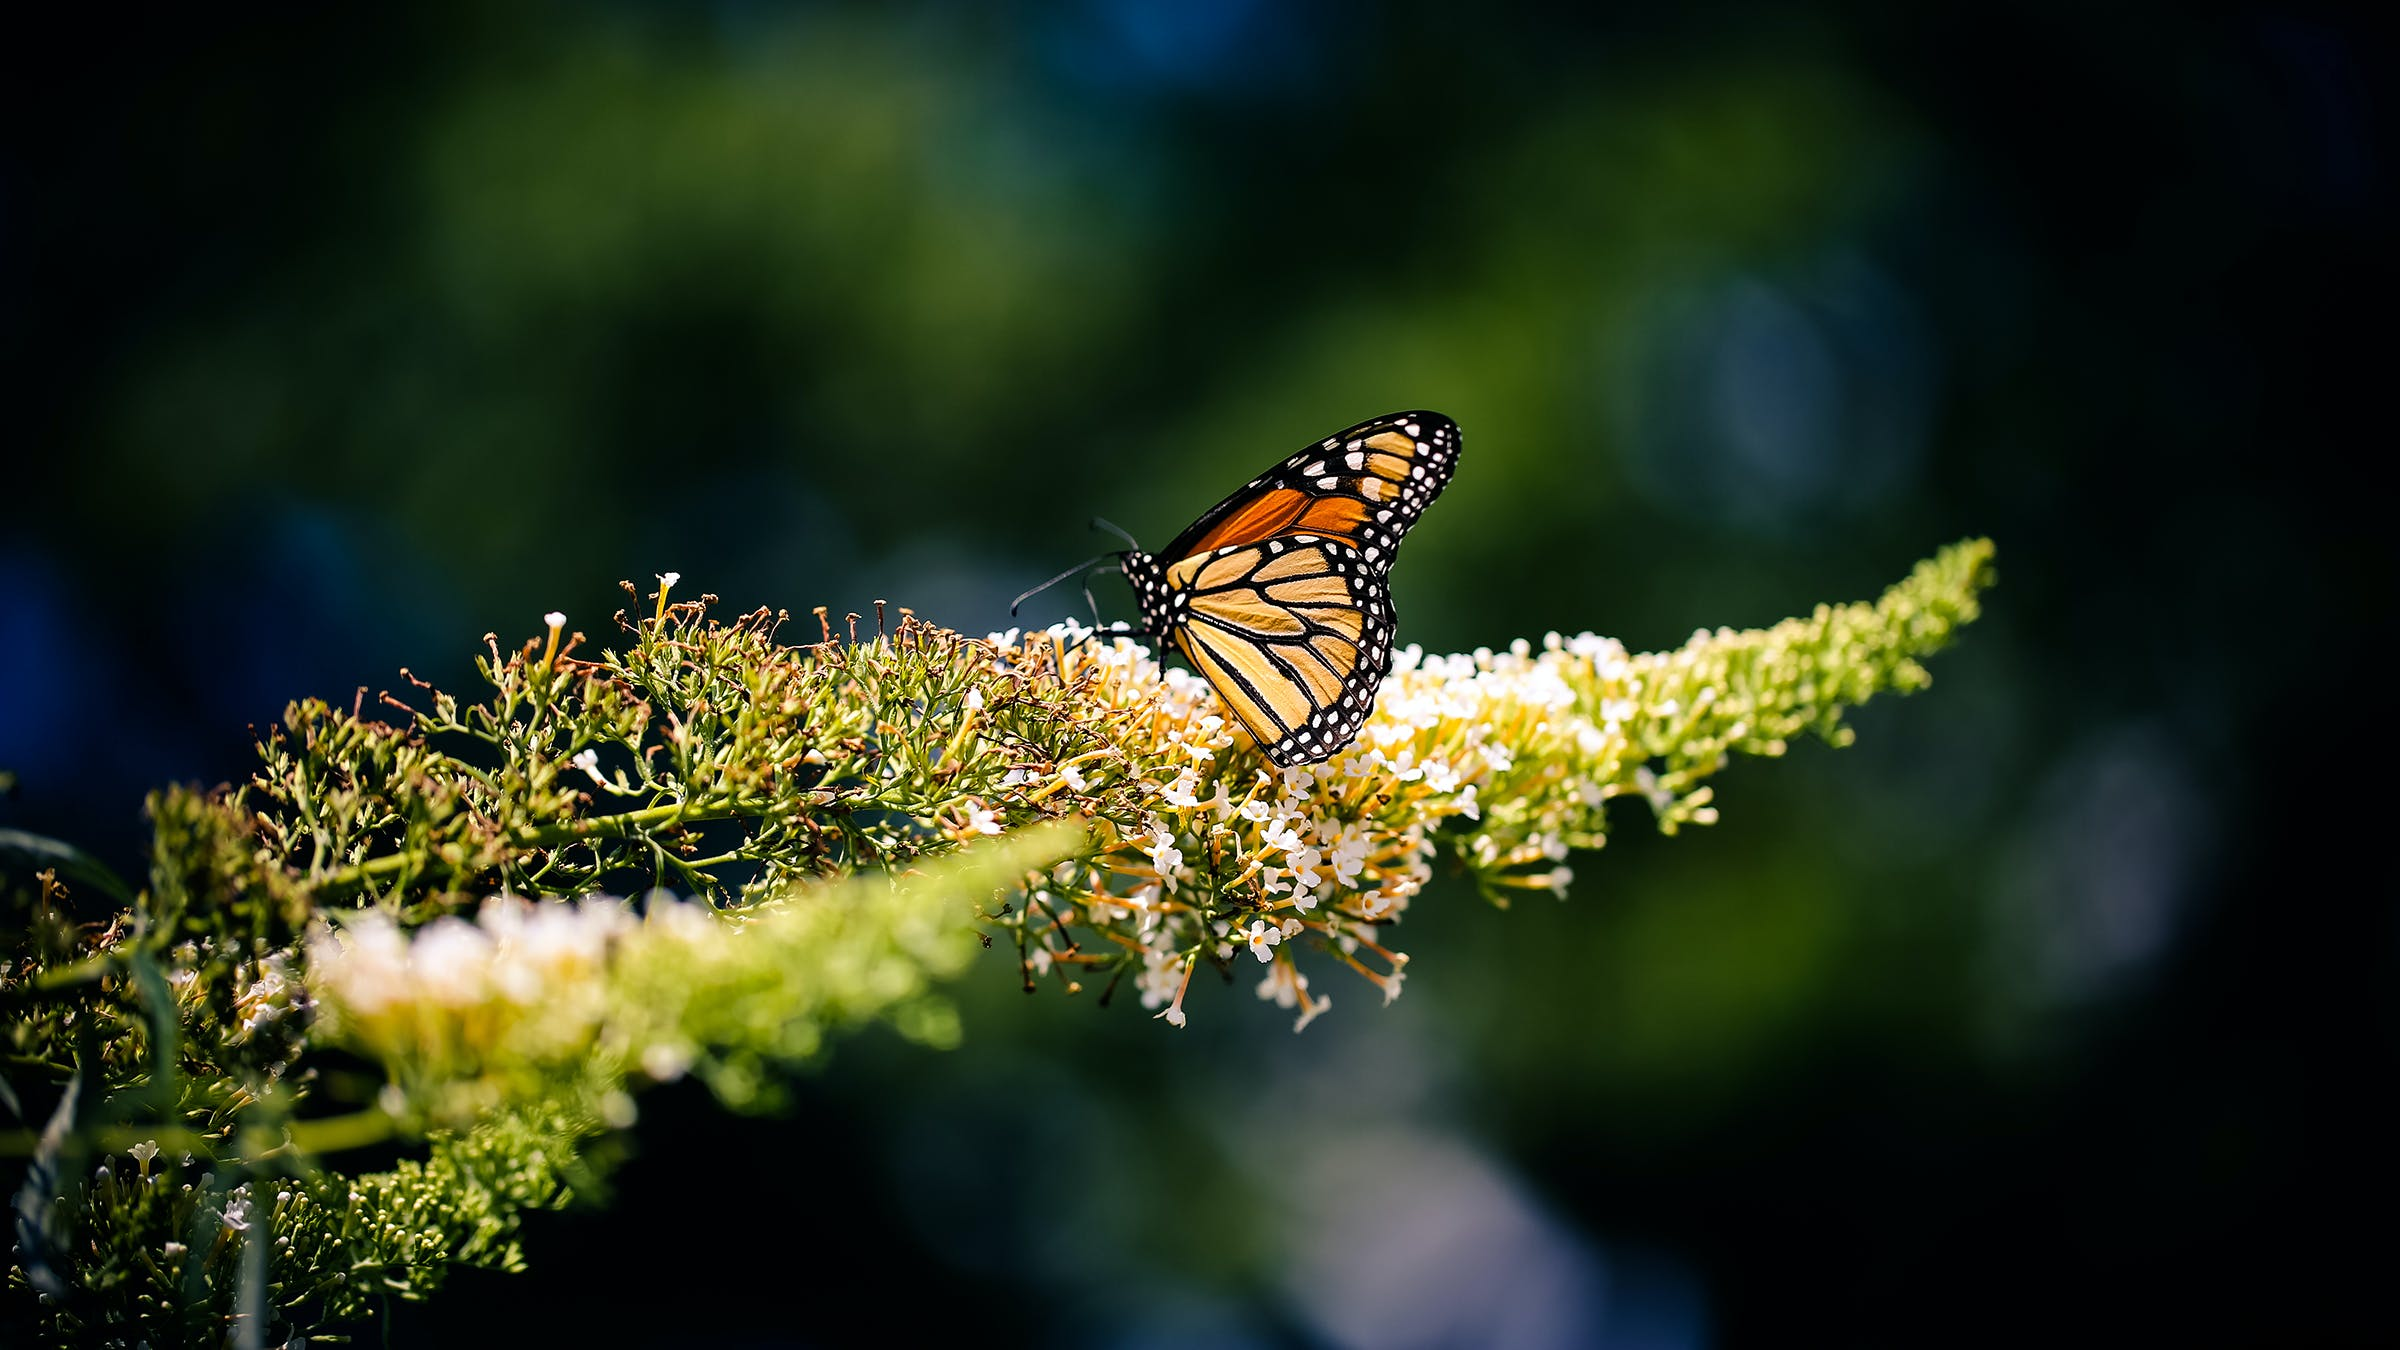 Free stock photo of nature, animal, insect, butterfly